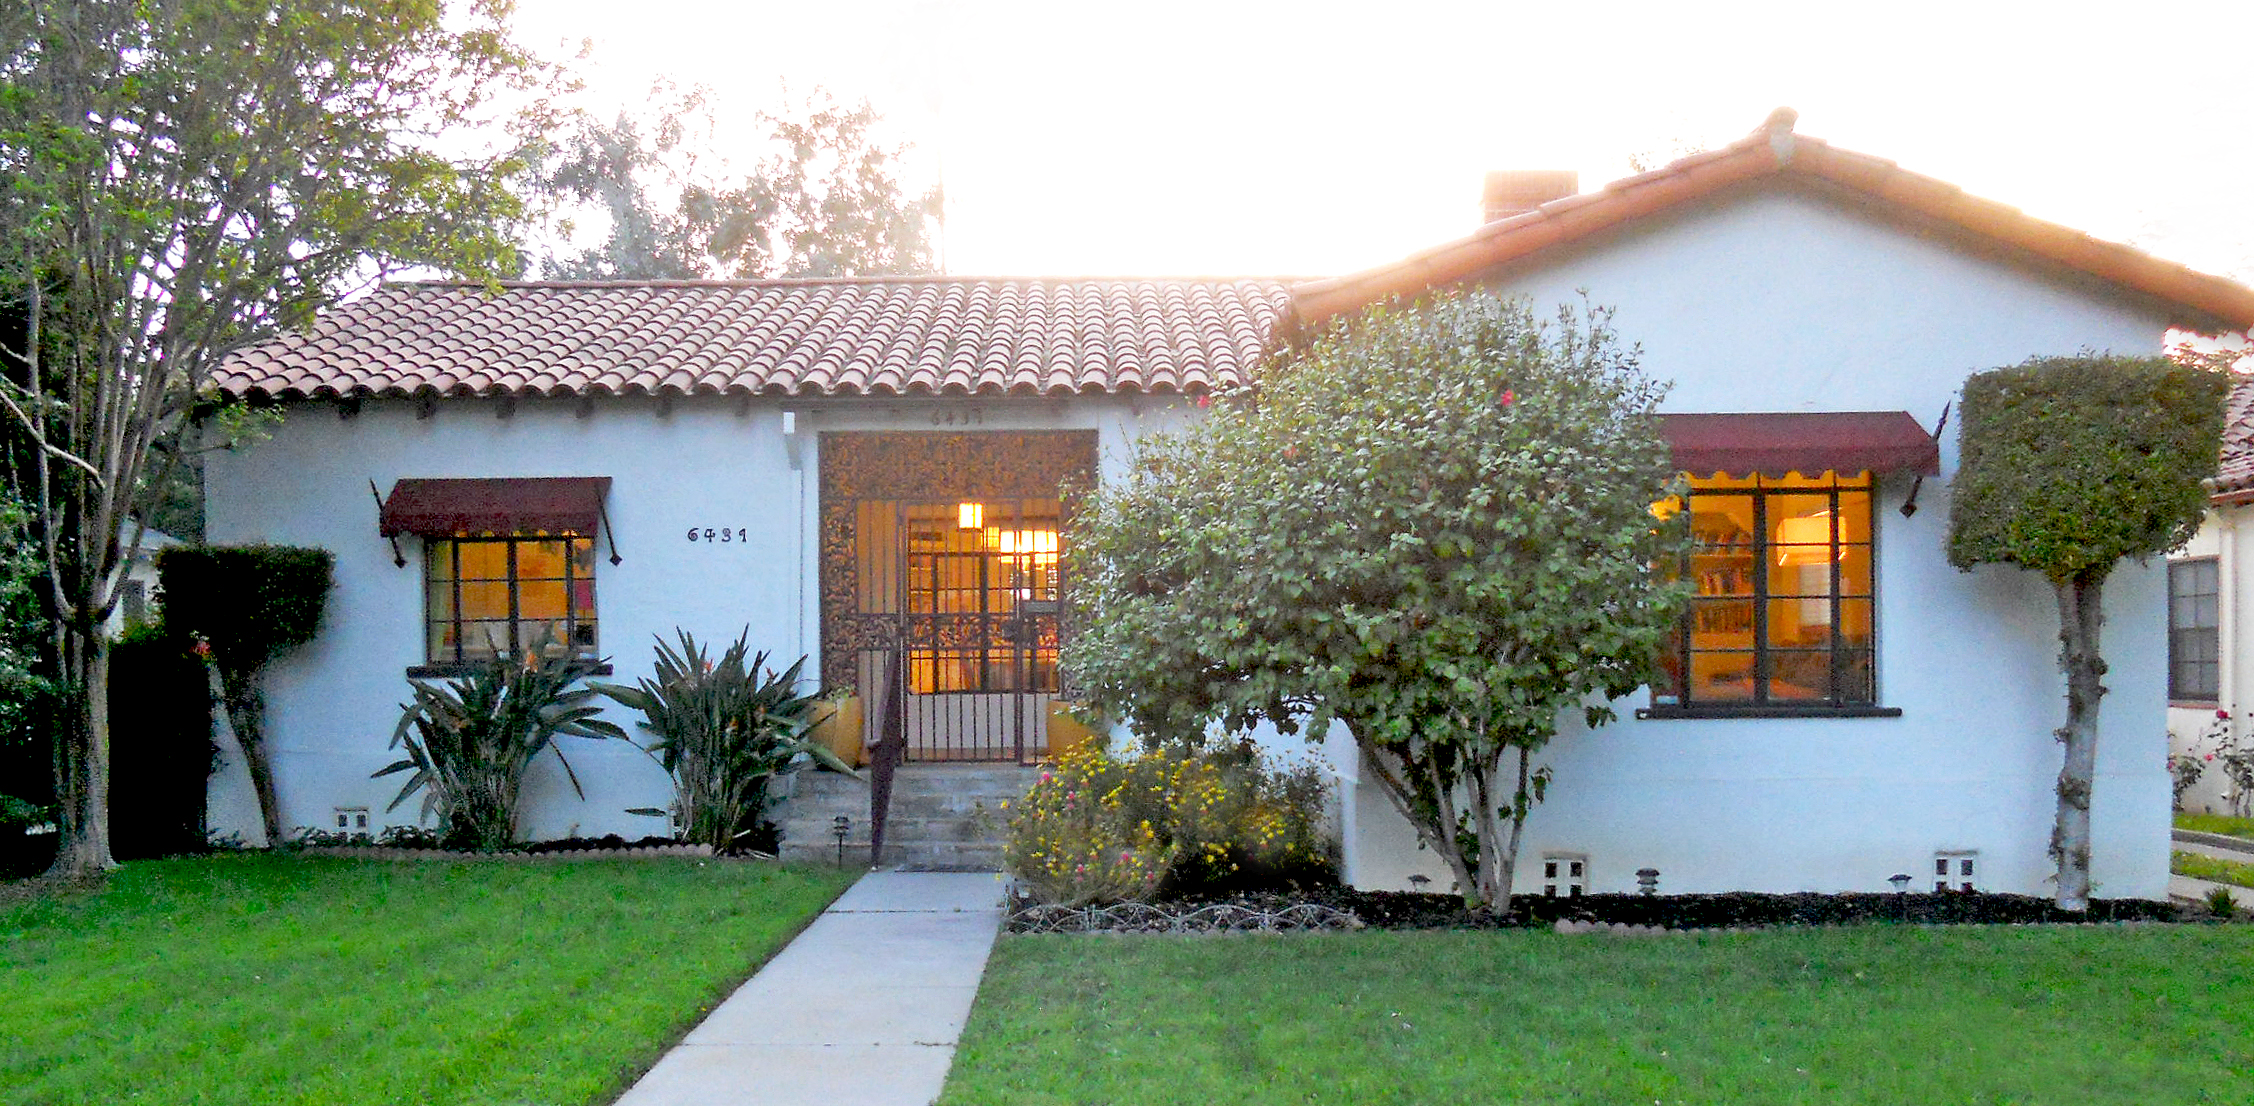 Superb [ SOLD For $330,000 On 05/07/2013 ] Built In 1941, This Gorgeous And  Well Maintained Spanish Colonial Revival With Spanish Tile Roof Boasts 3  Large Bedrooms ...